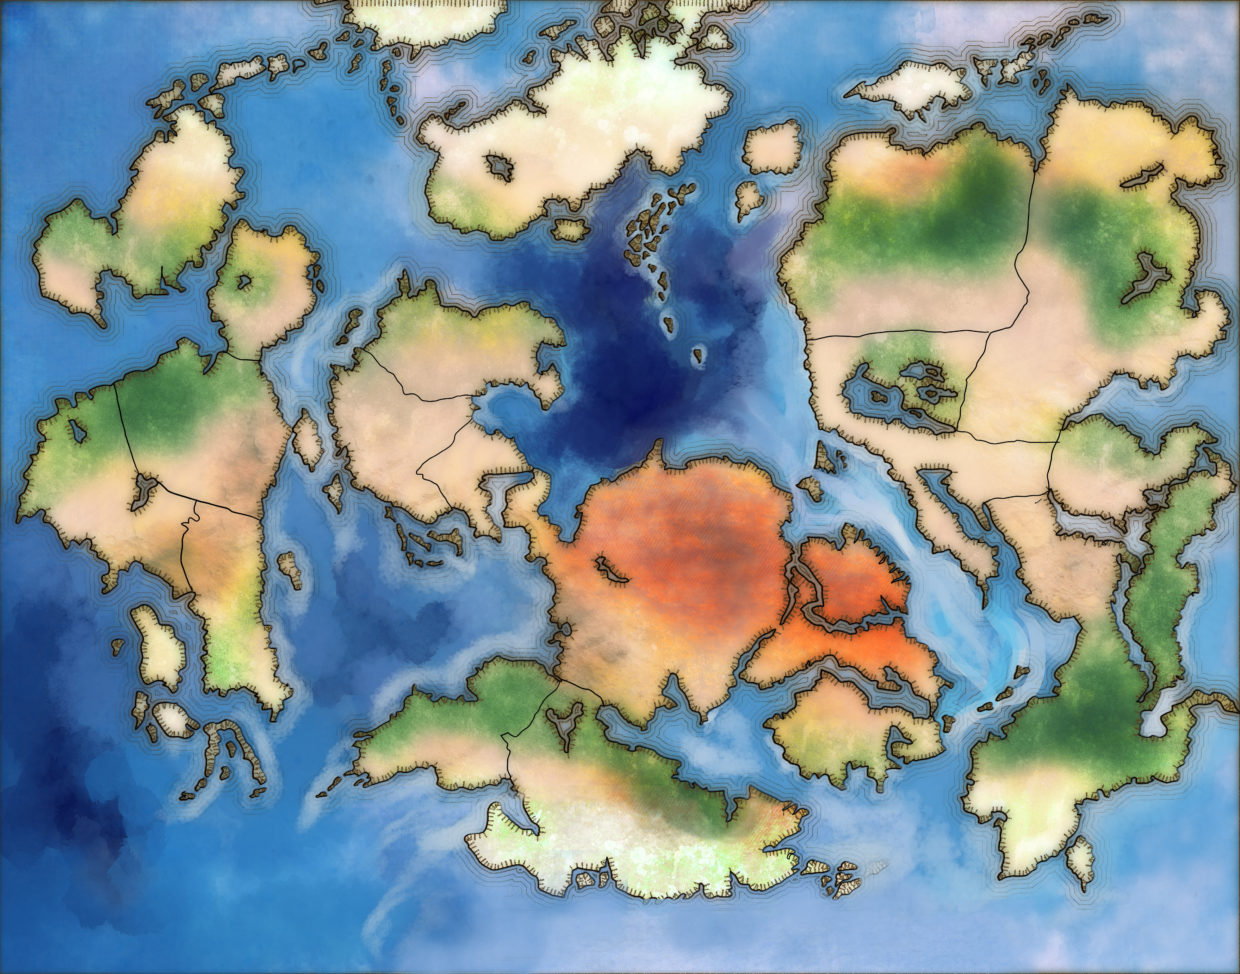 World Map For Fantasy Novel With Colored Ocean And